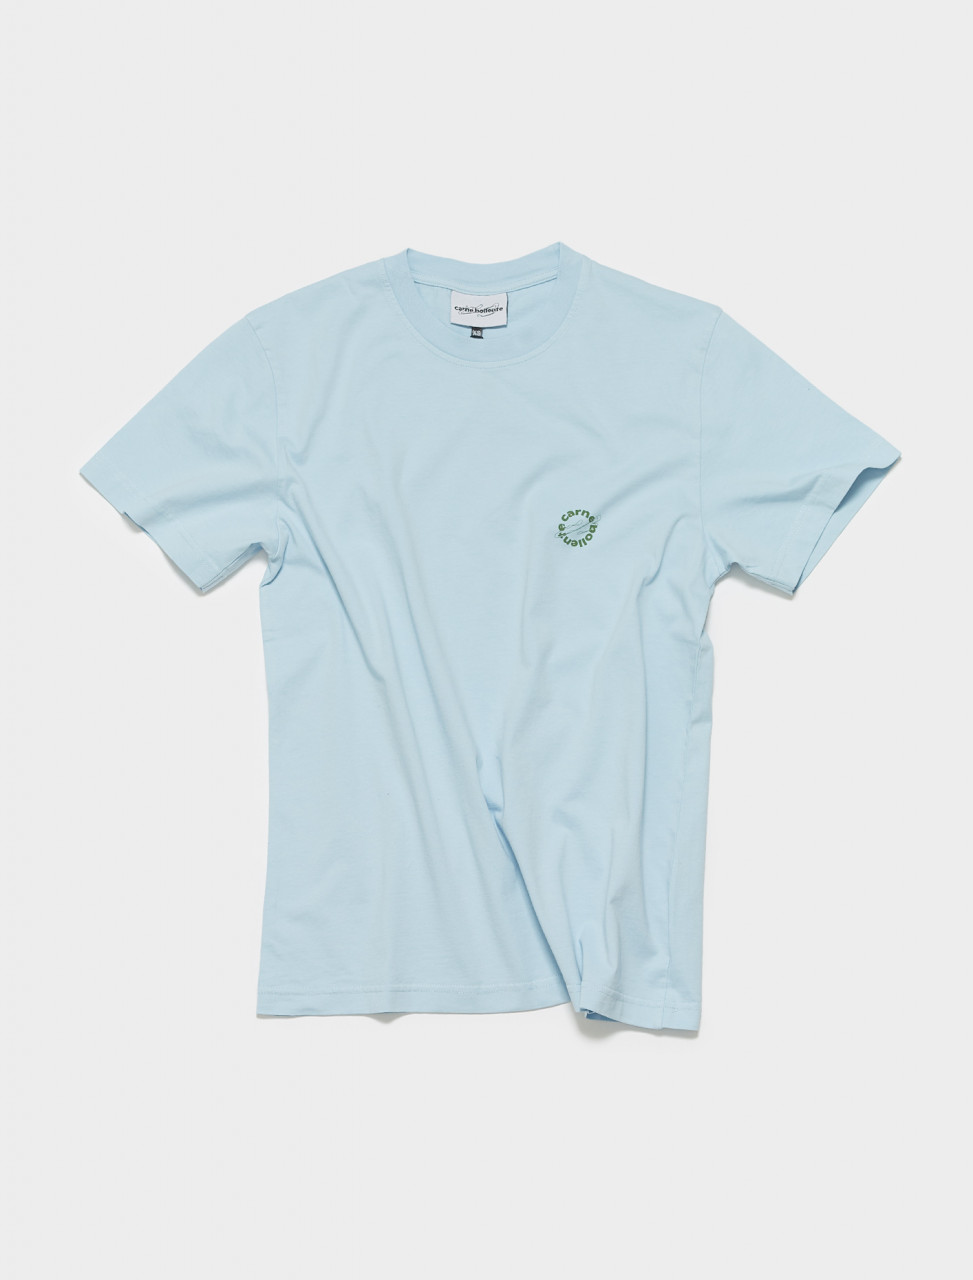 SS21TS06 CARNE BOLLENTE HAVE A FRUIT T SHIRT IN WASHED BLUE